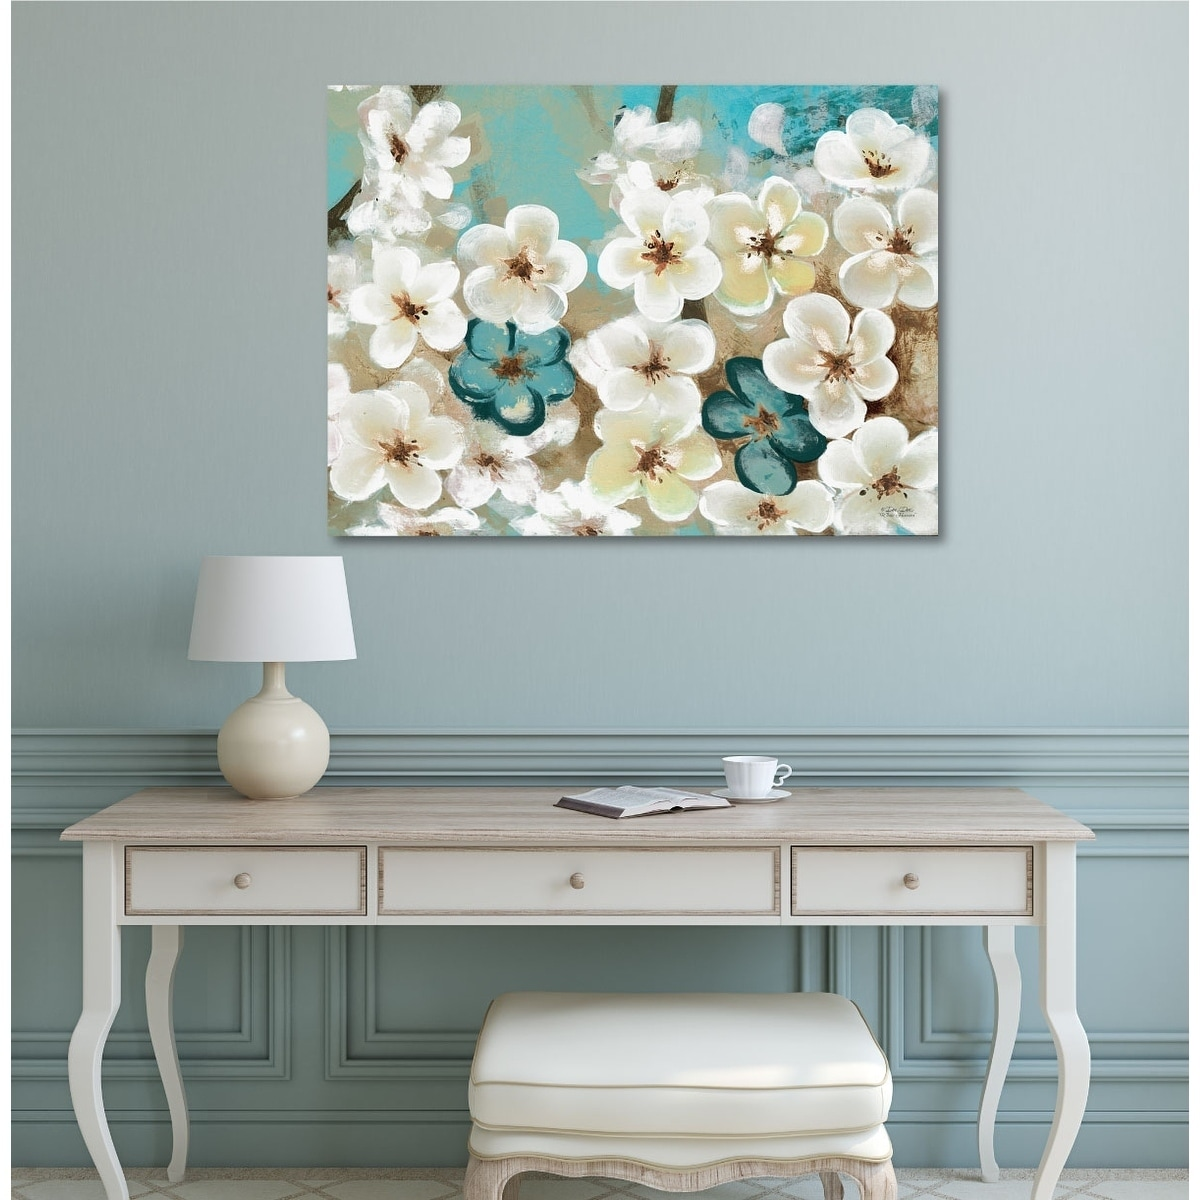 Shop Courtside Market White Flowers Gallery Wrapped Canvas Wall Art